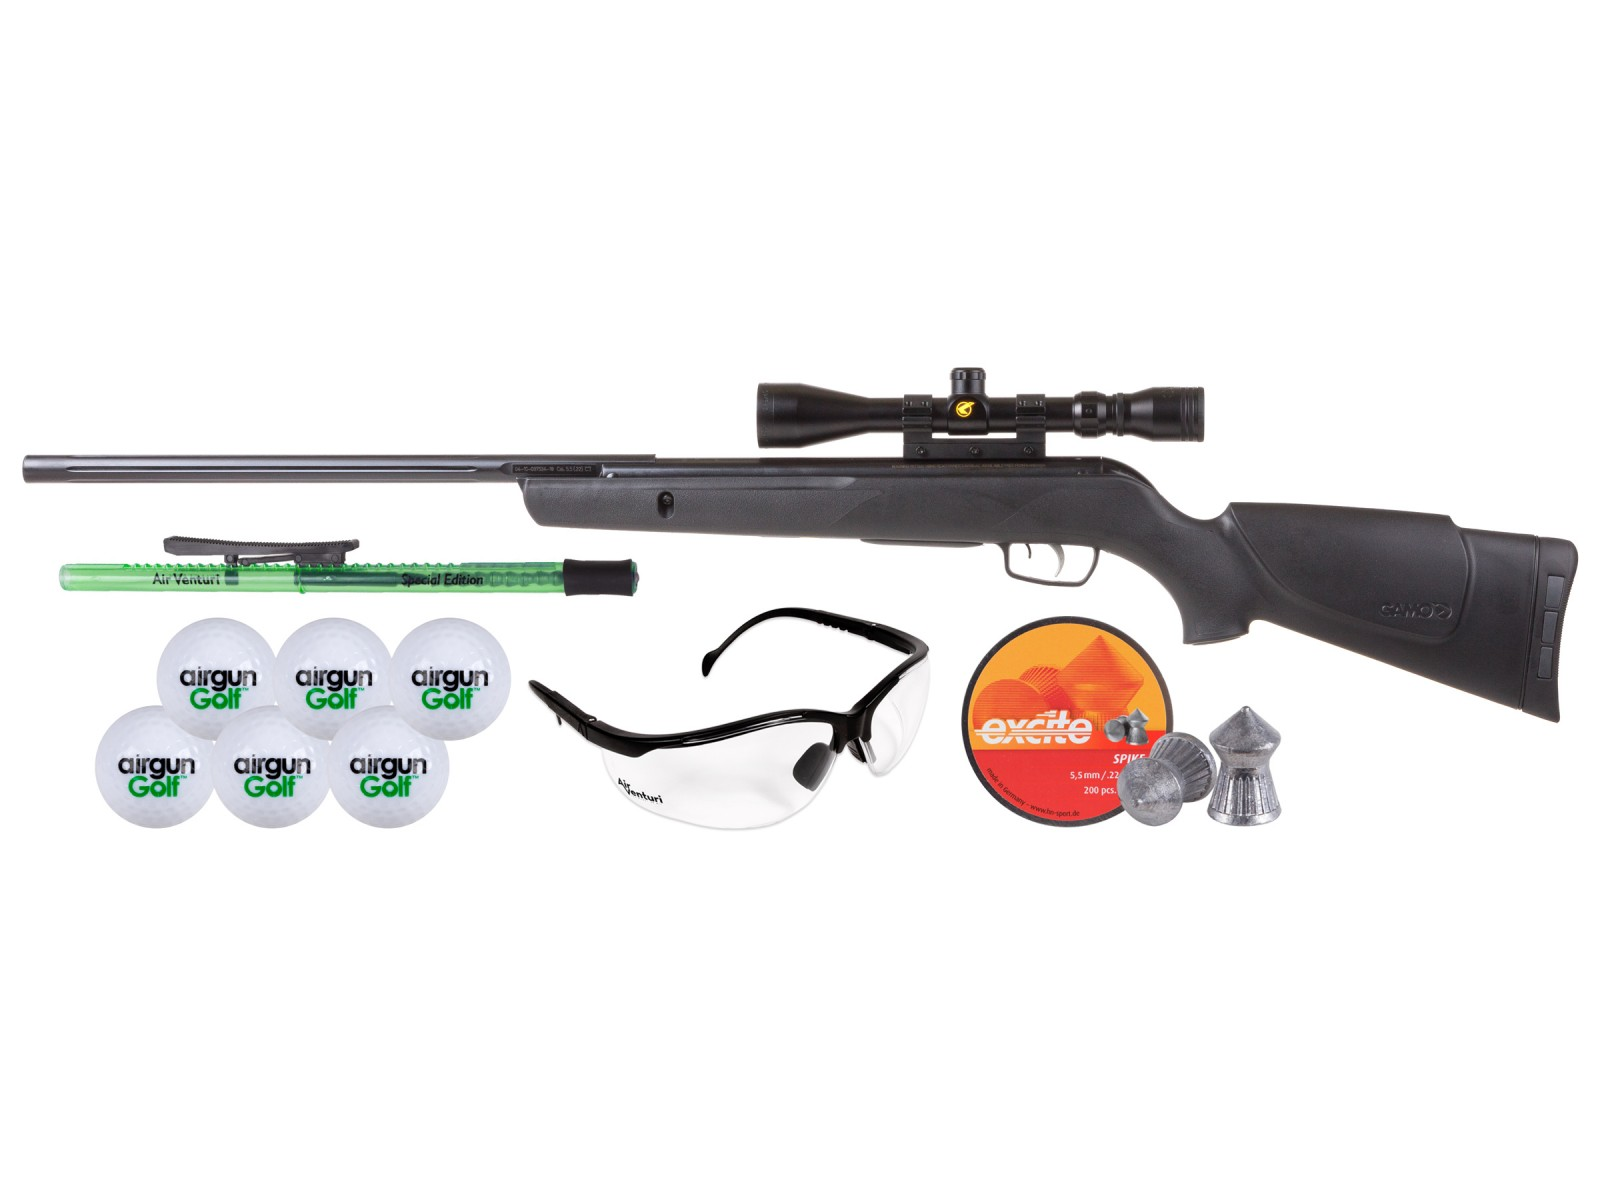 Gamo Big Cat .22 w/ 3-9x40 Scope New Airgunner Kit 0.22